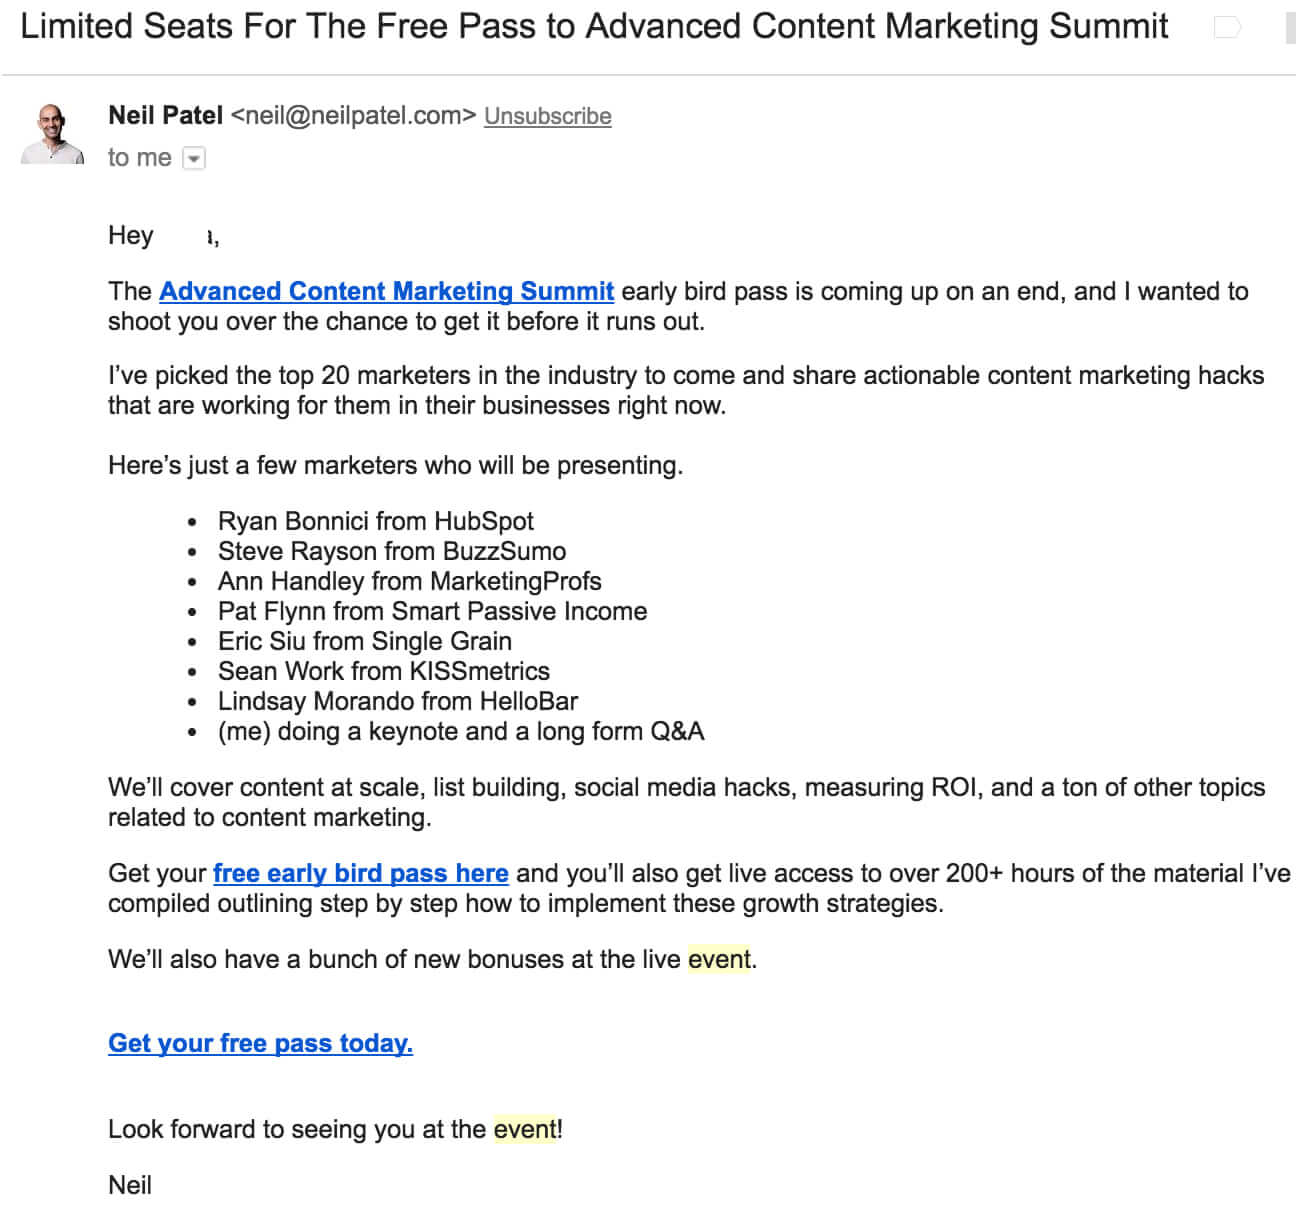 7 Real Examples Of Event Invitation Emails